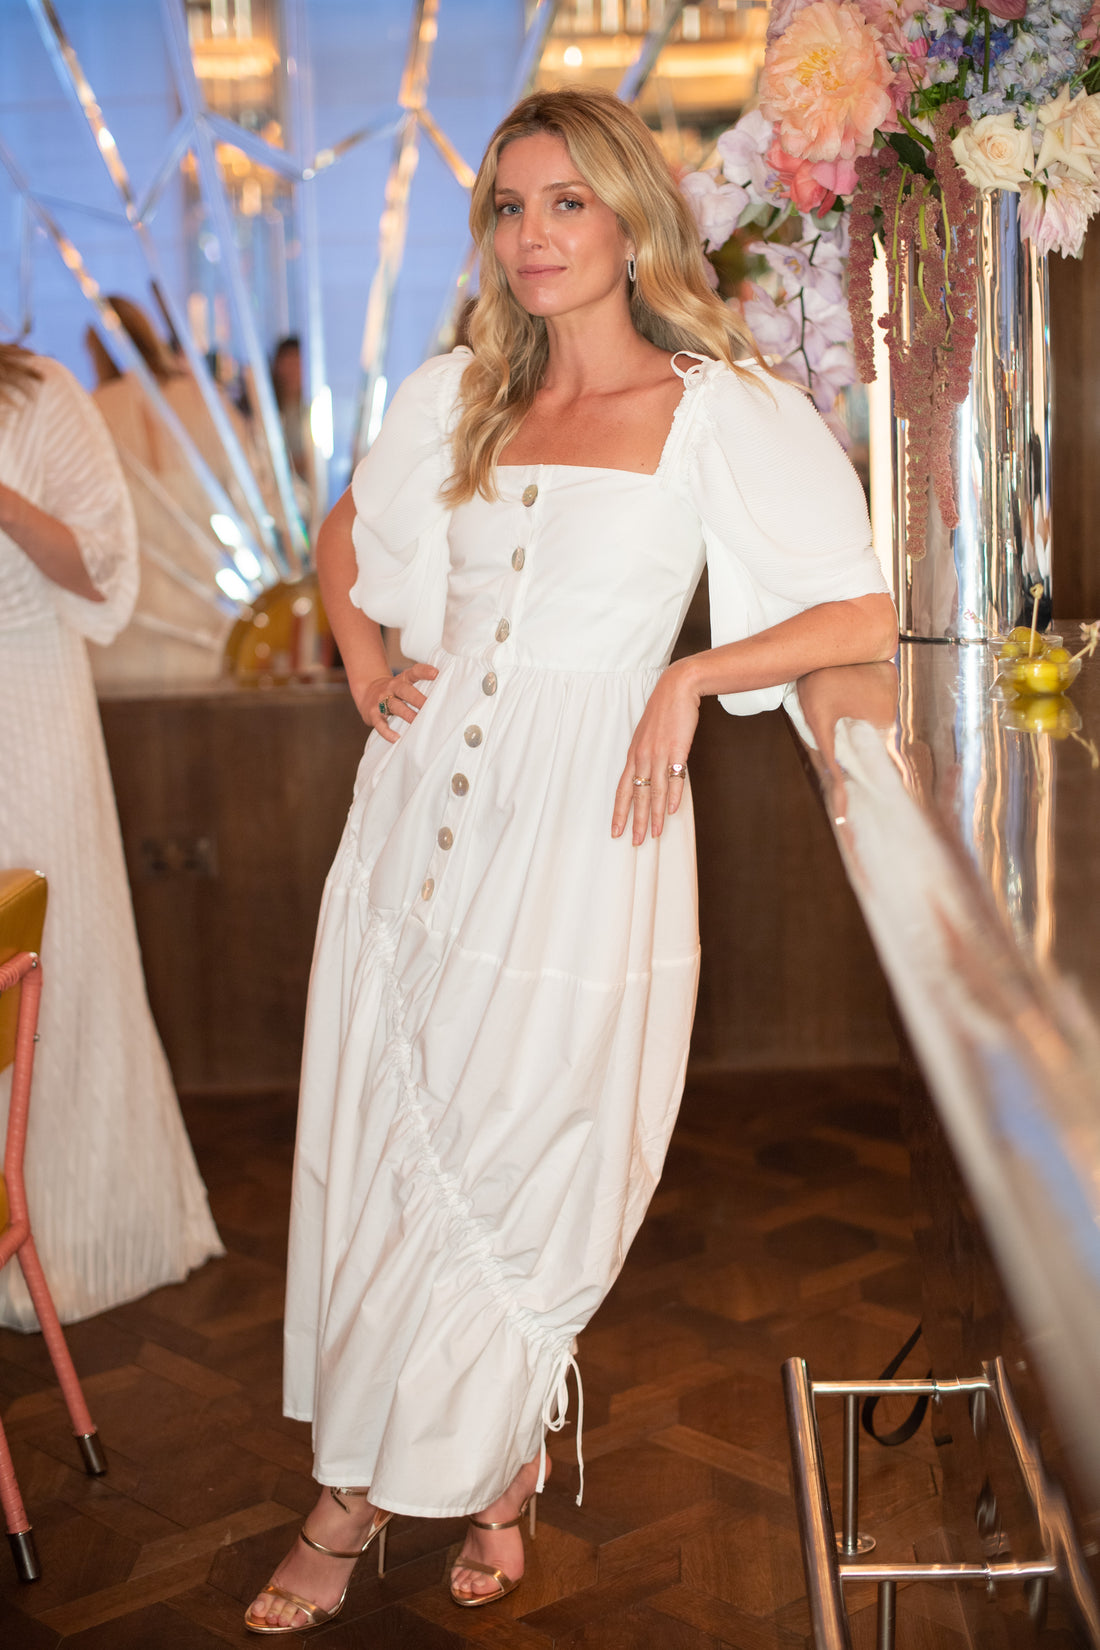 Annabelle Wallis wears SS19 Elena Dress to the Georgia Hardinge dinner at The Brasserie of Light